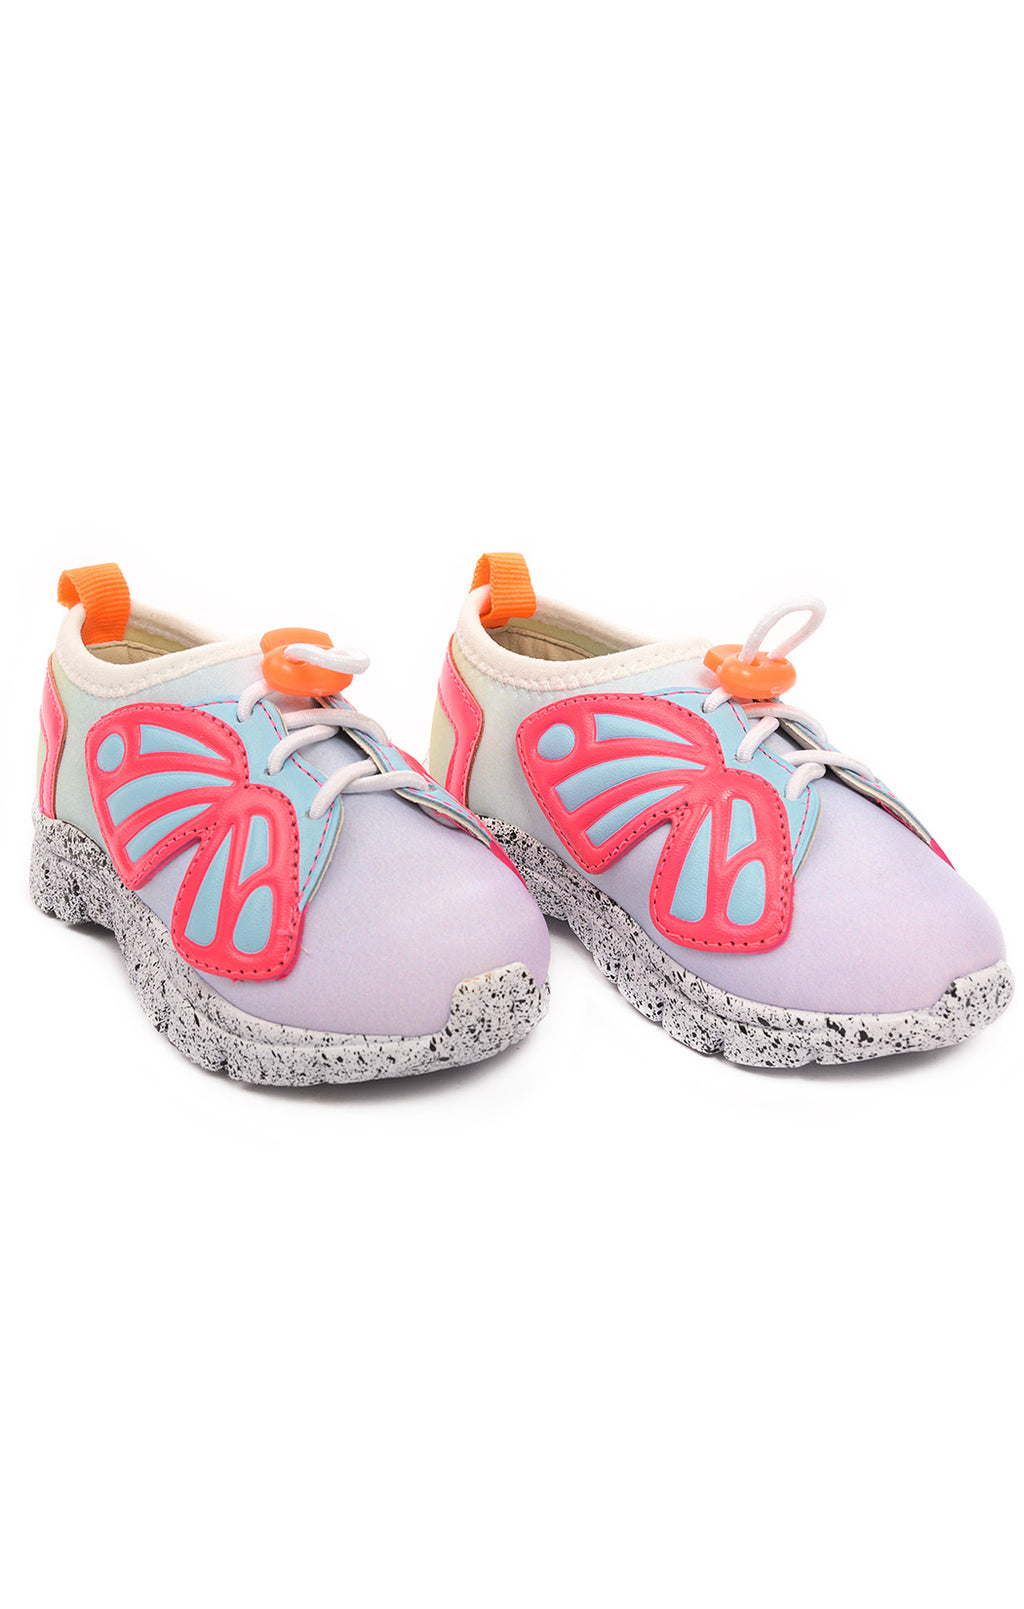 Front view of SOPHIA WEBSTER Shoes Size: 22 months